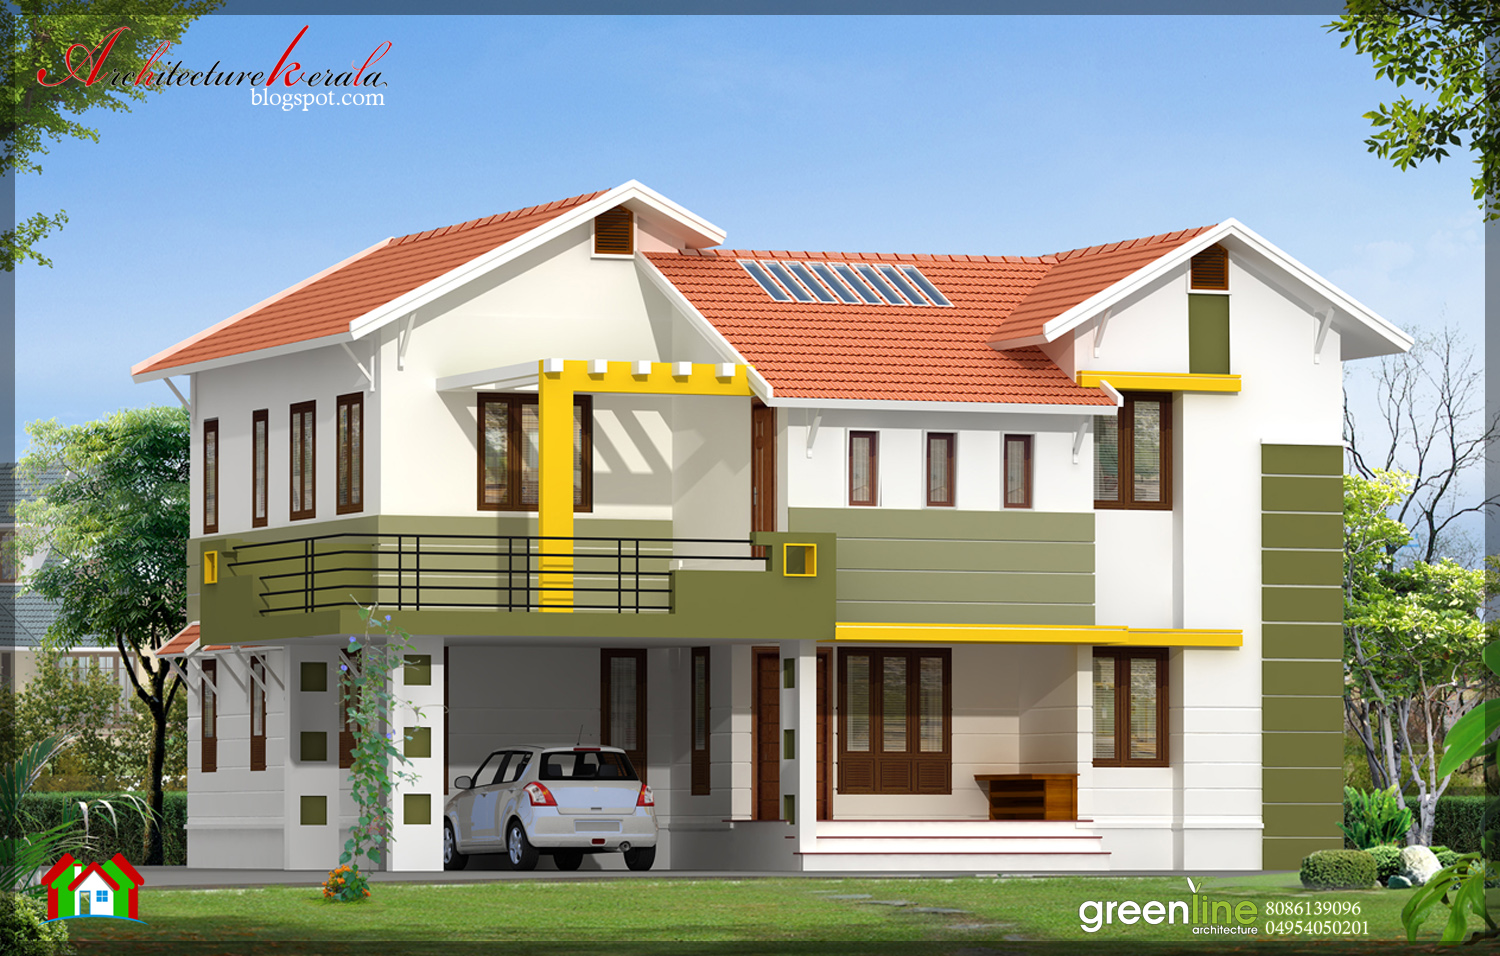 Architecture kerala 4 bhk contemporary style indian home for Kerala home designs contemporary